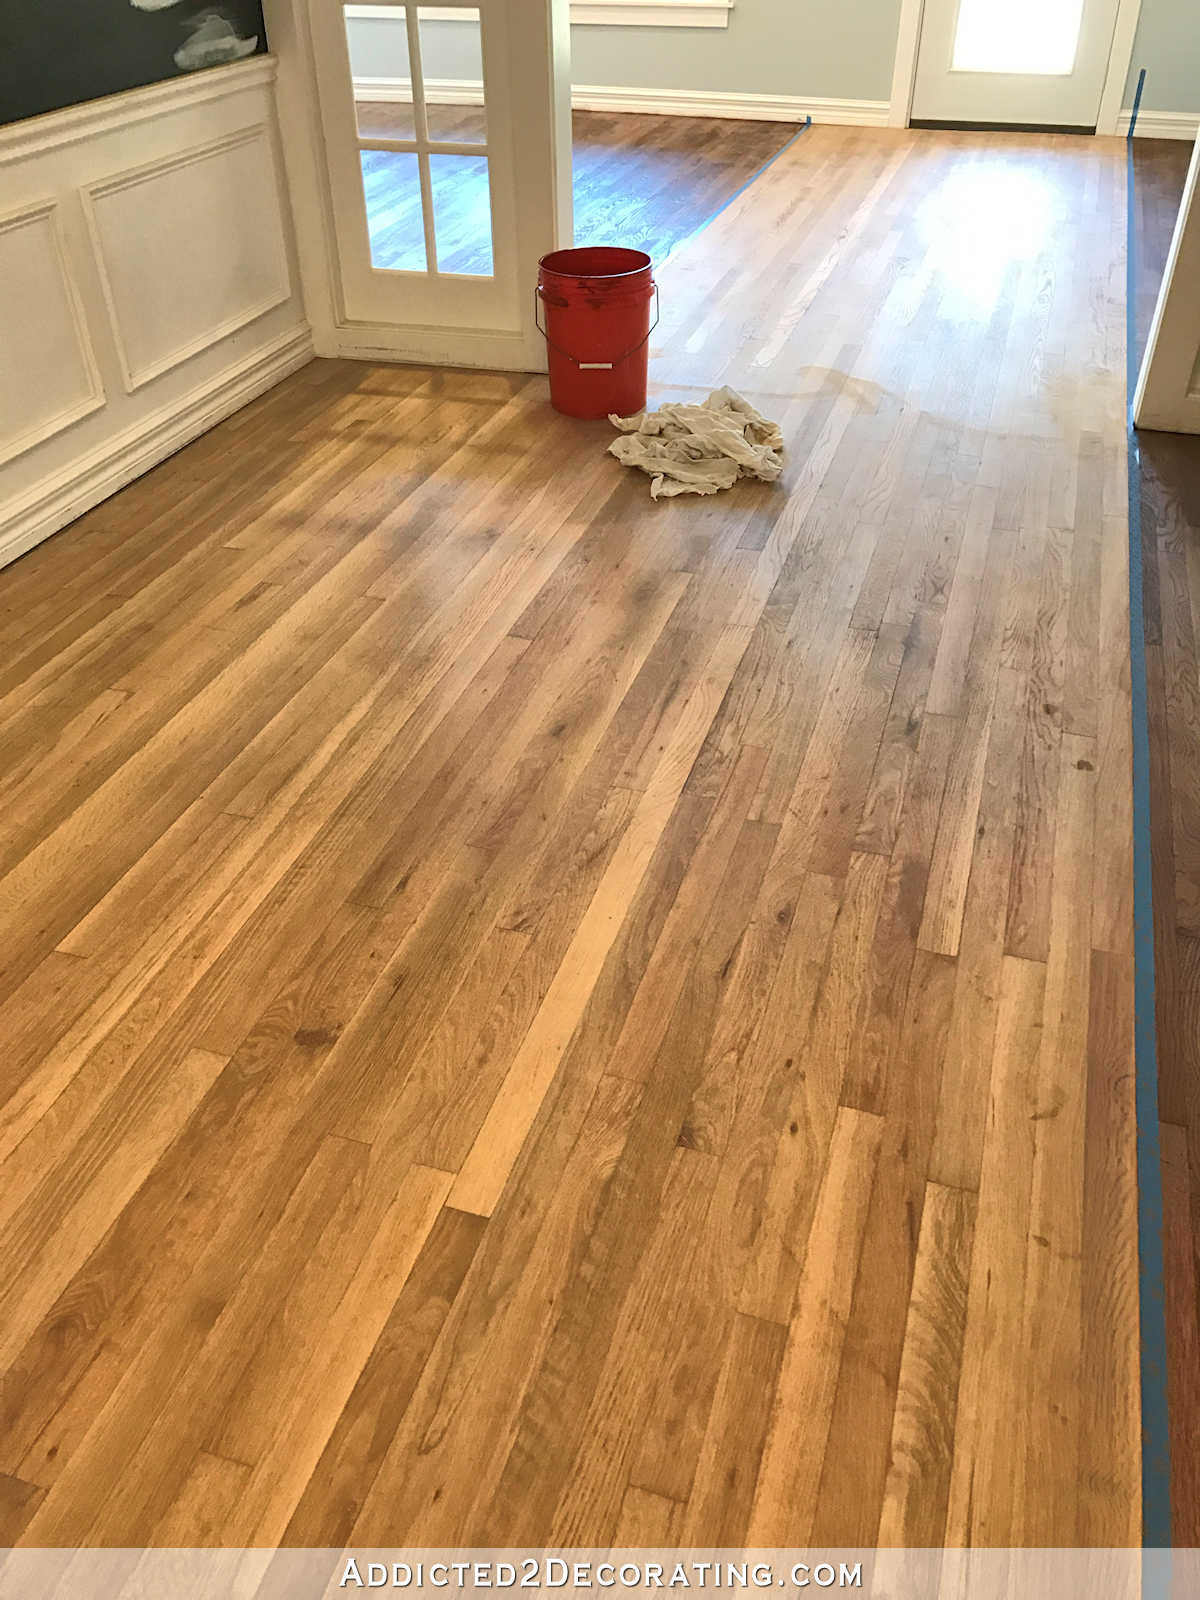 are dark or light hardwood floors better of adventures in staining my red oak hardwood floors products process for staining red oak hardwood floors 8 entryway and music room wood conditioner